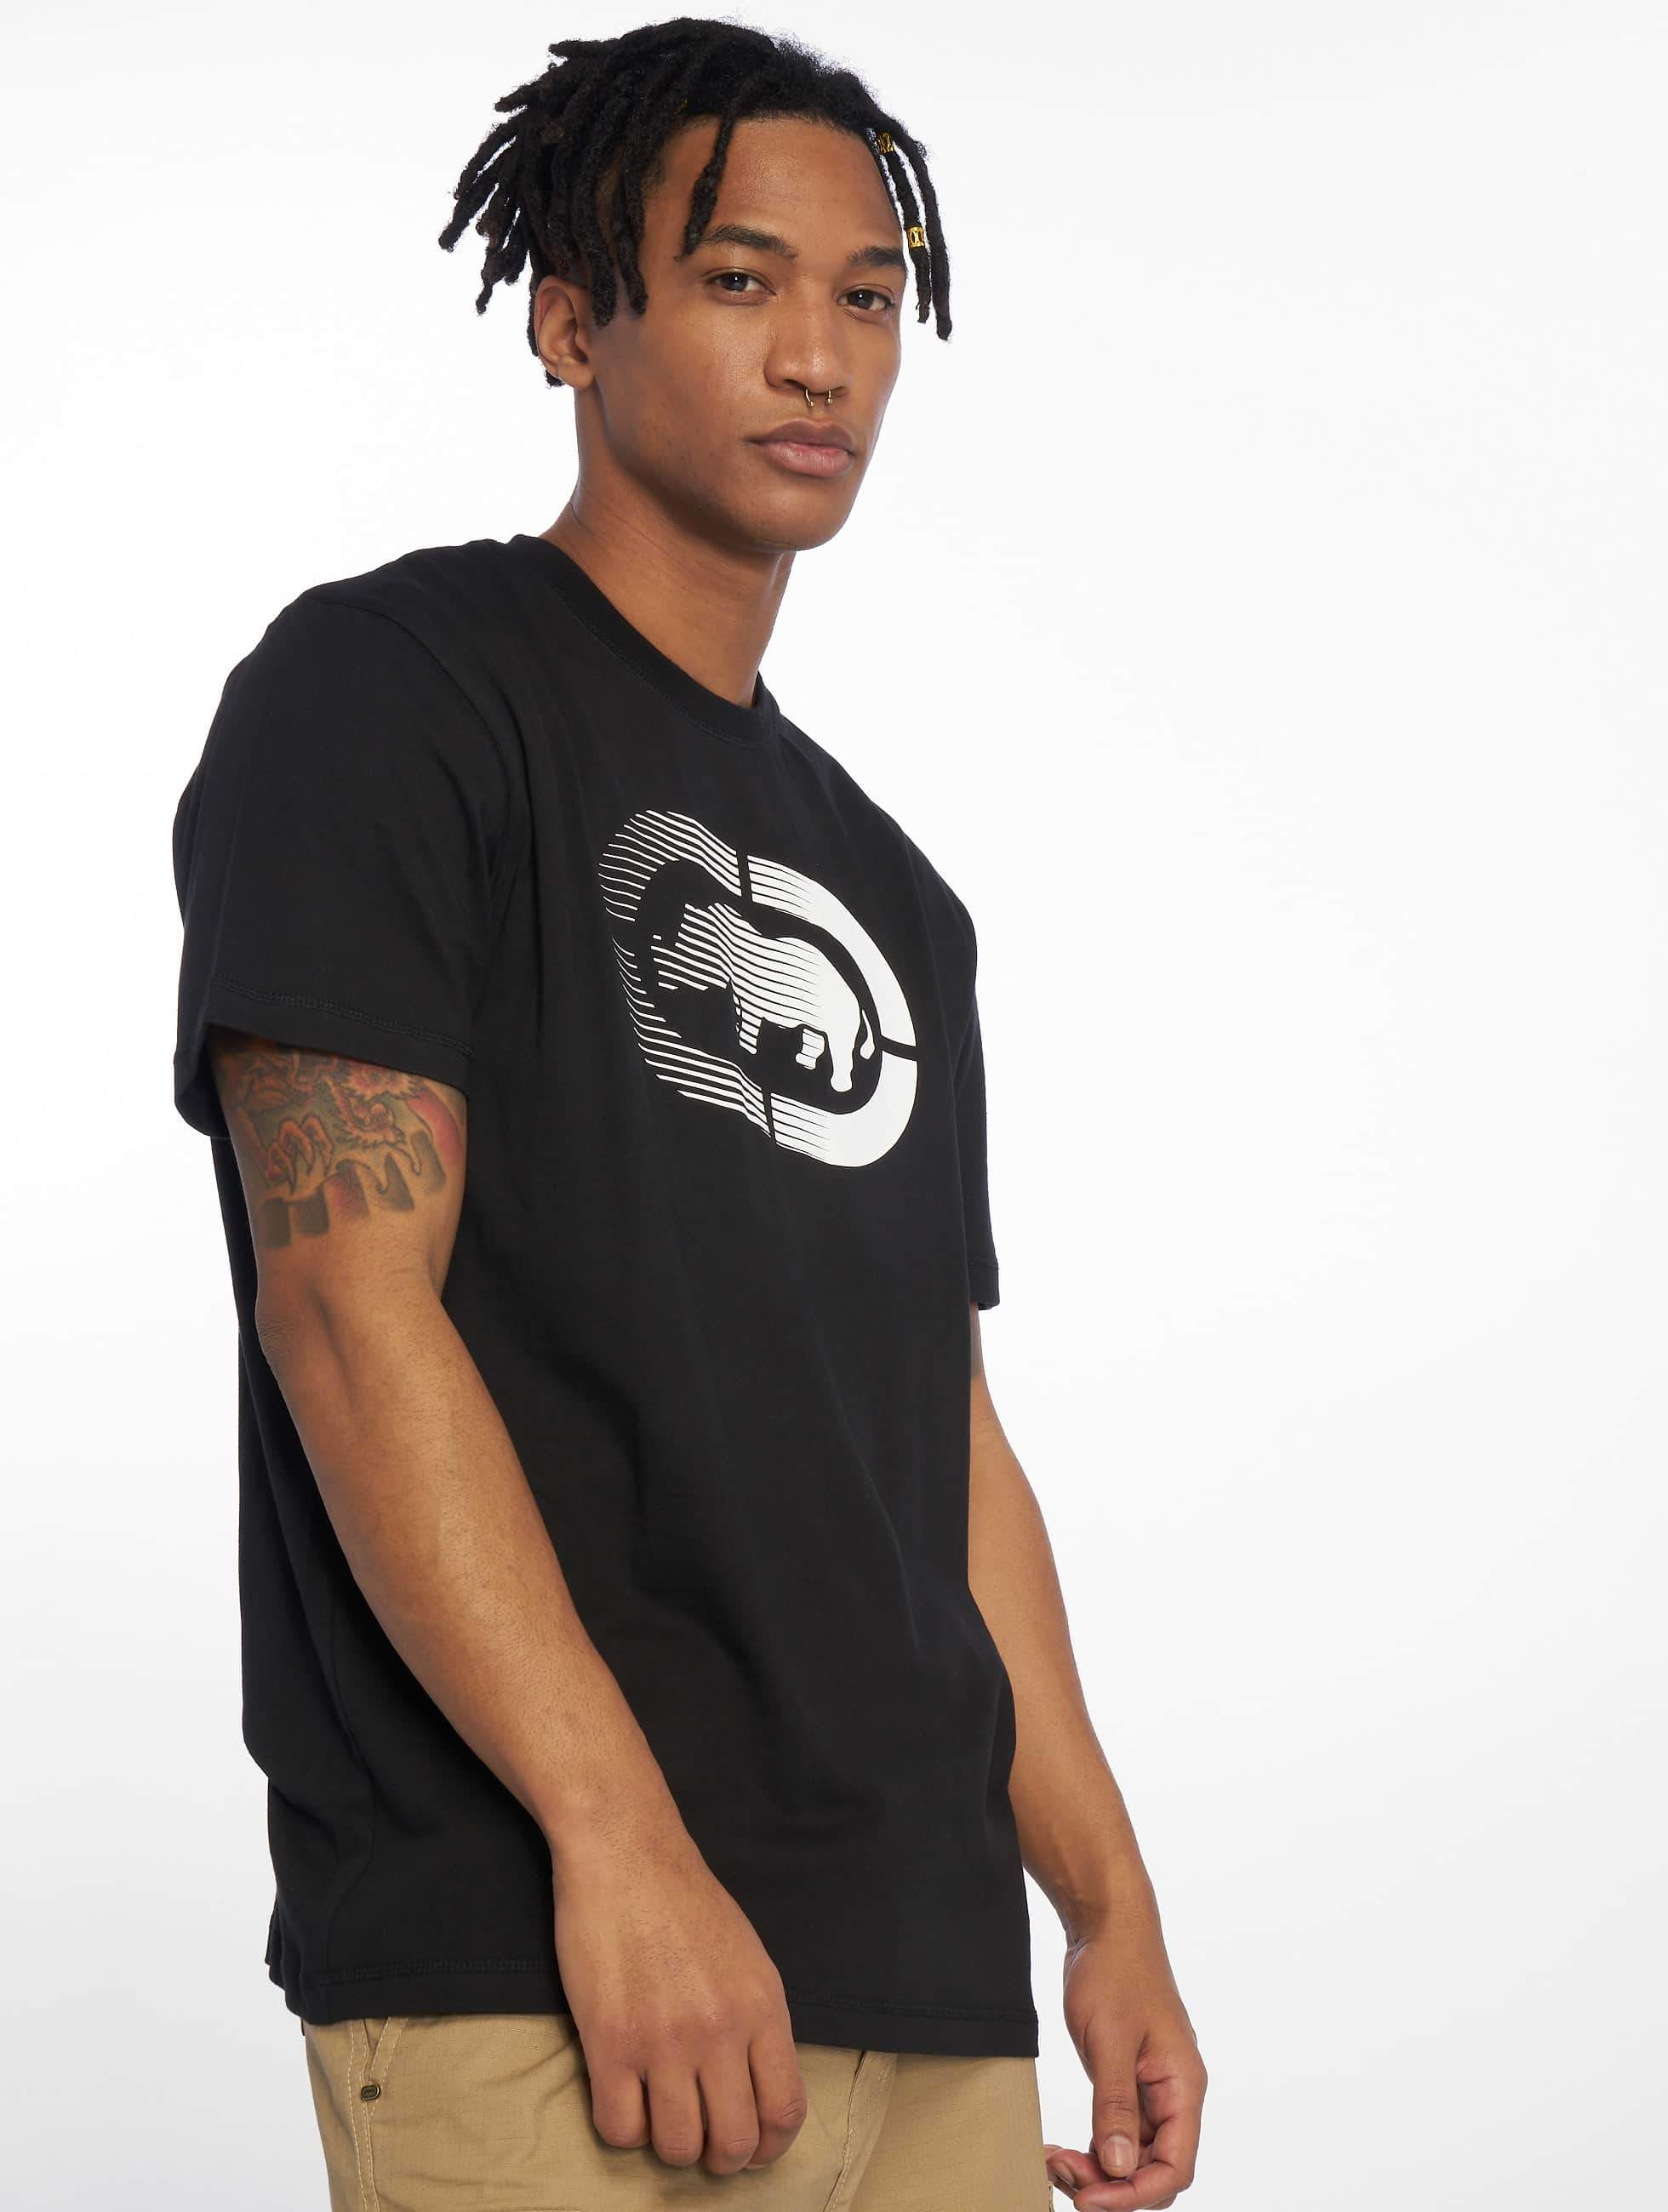 Ecko Unltd. / T-Shirt 5050 in black 2XL